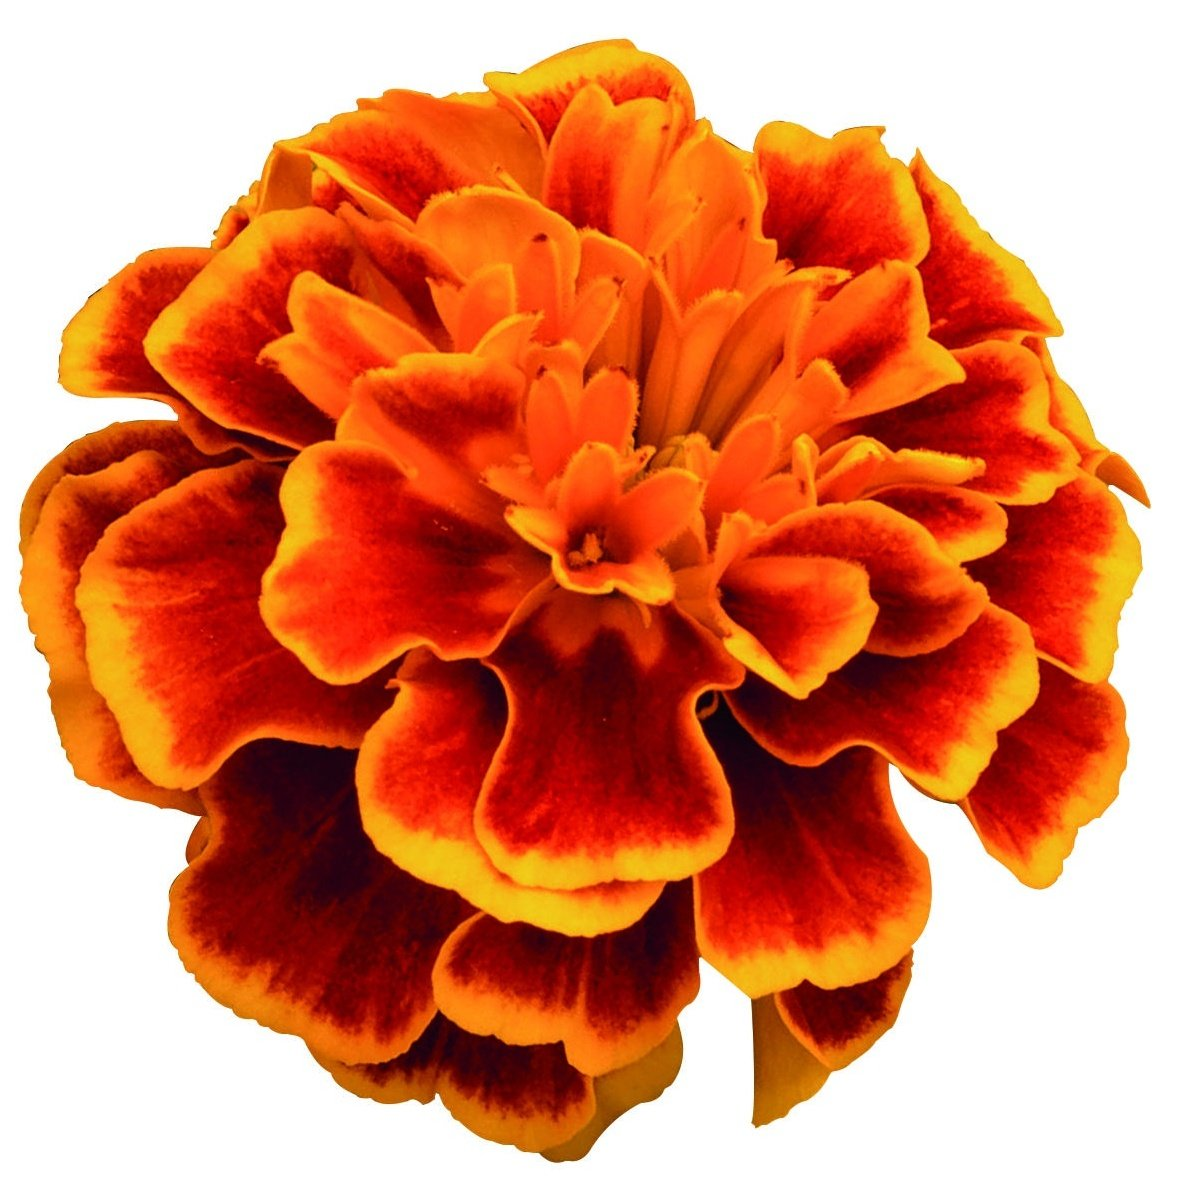 Marigold French, Super Hero™ Orange Flame